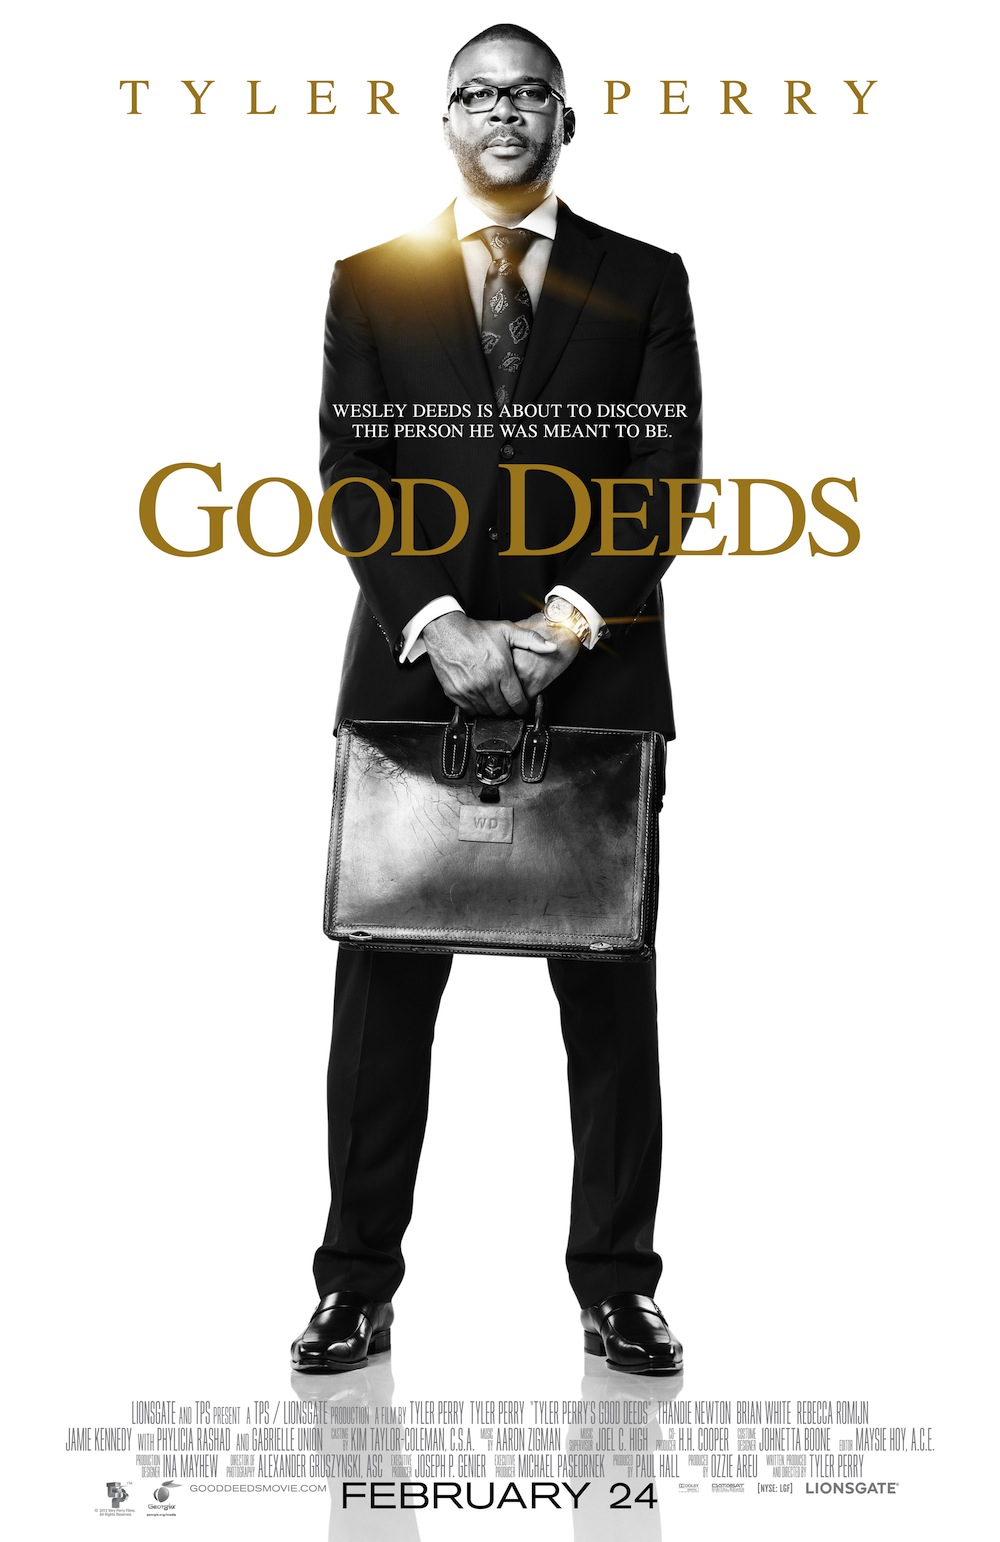 10-tyler-perry-good-deeds